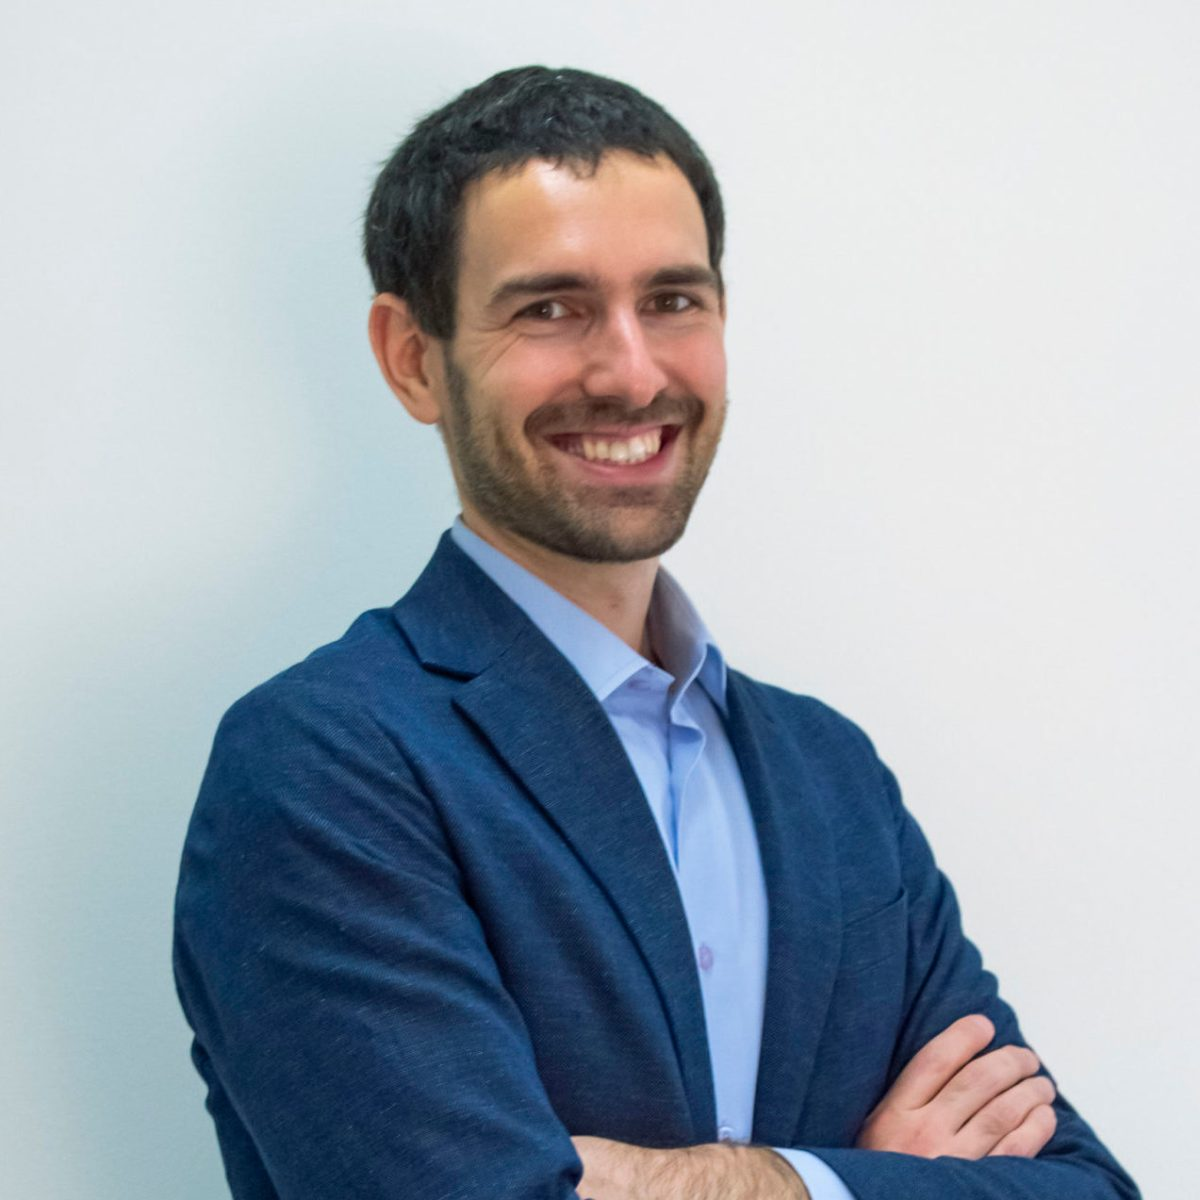 Bionomous Co-Founder and CEO